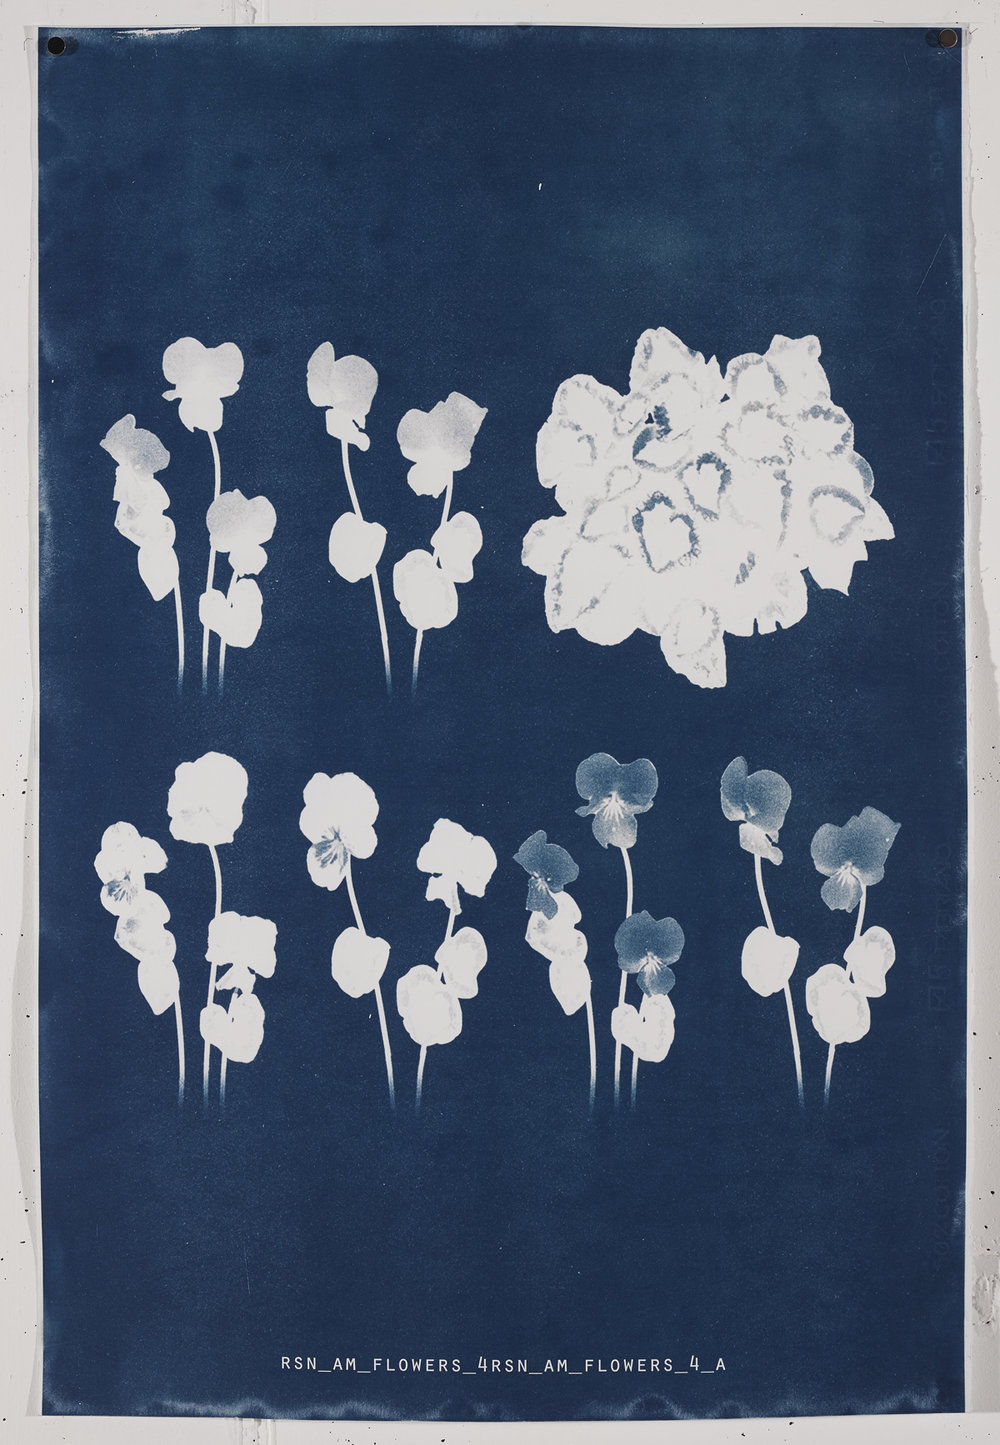 AM FLOWERS  2017 Unique cyanotype print on Frabriano No.5.  90.4cm x 61cm